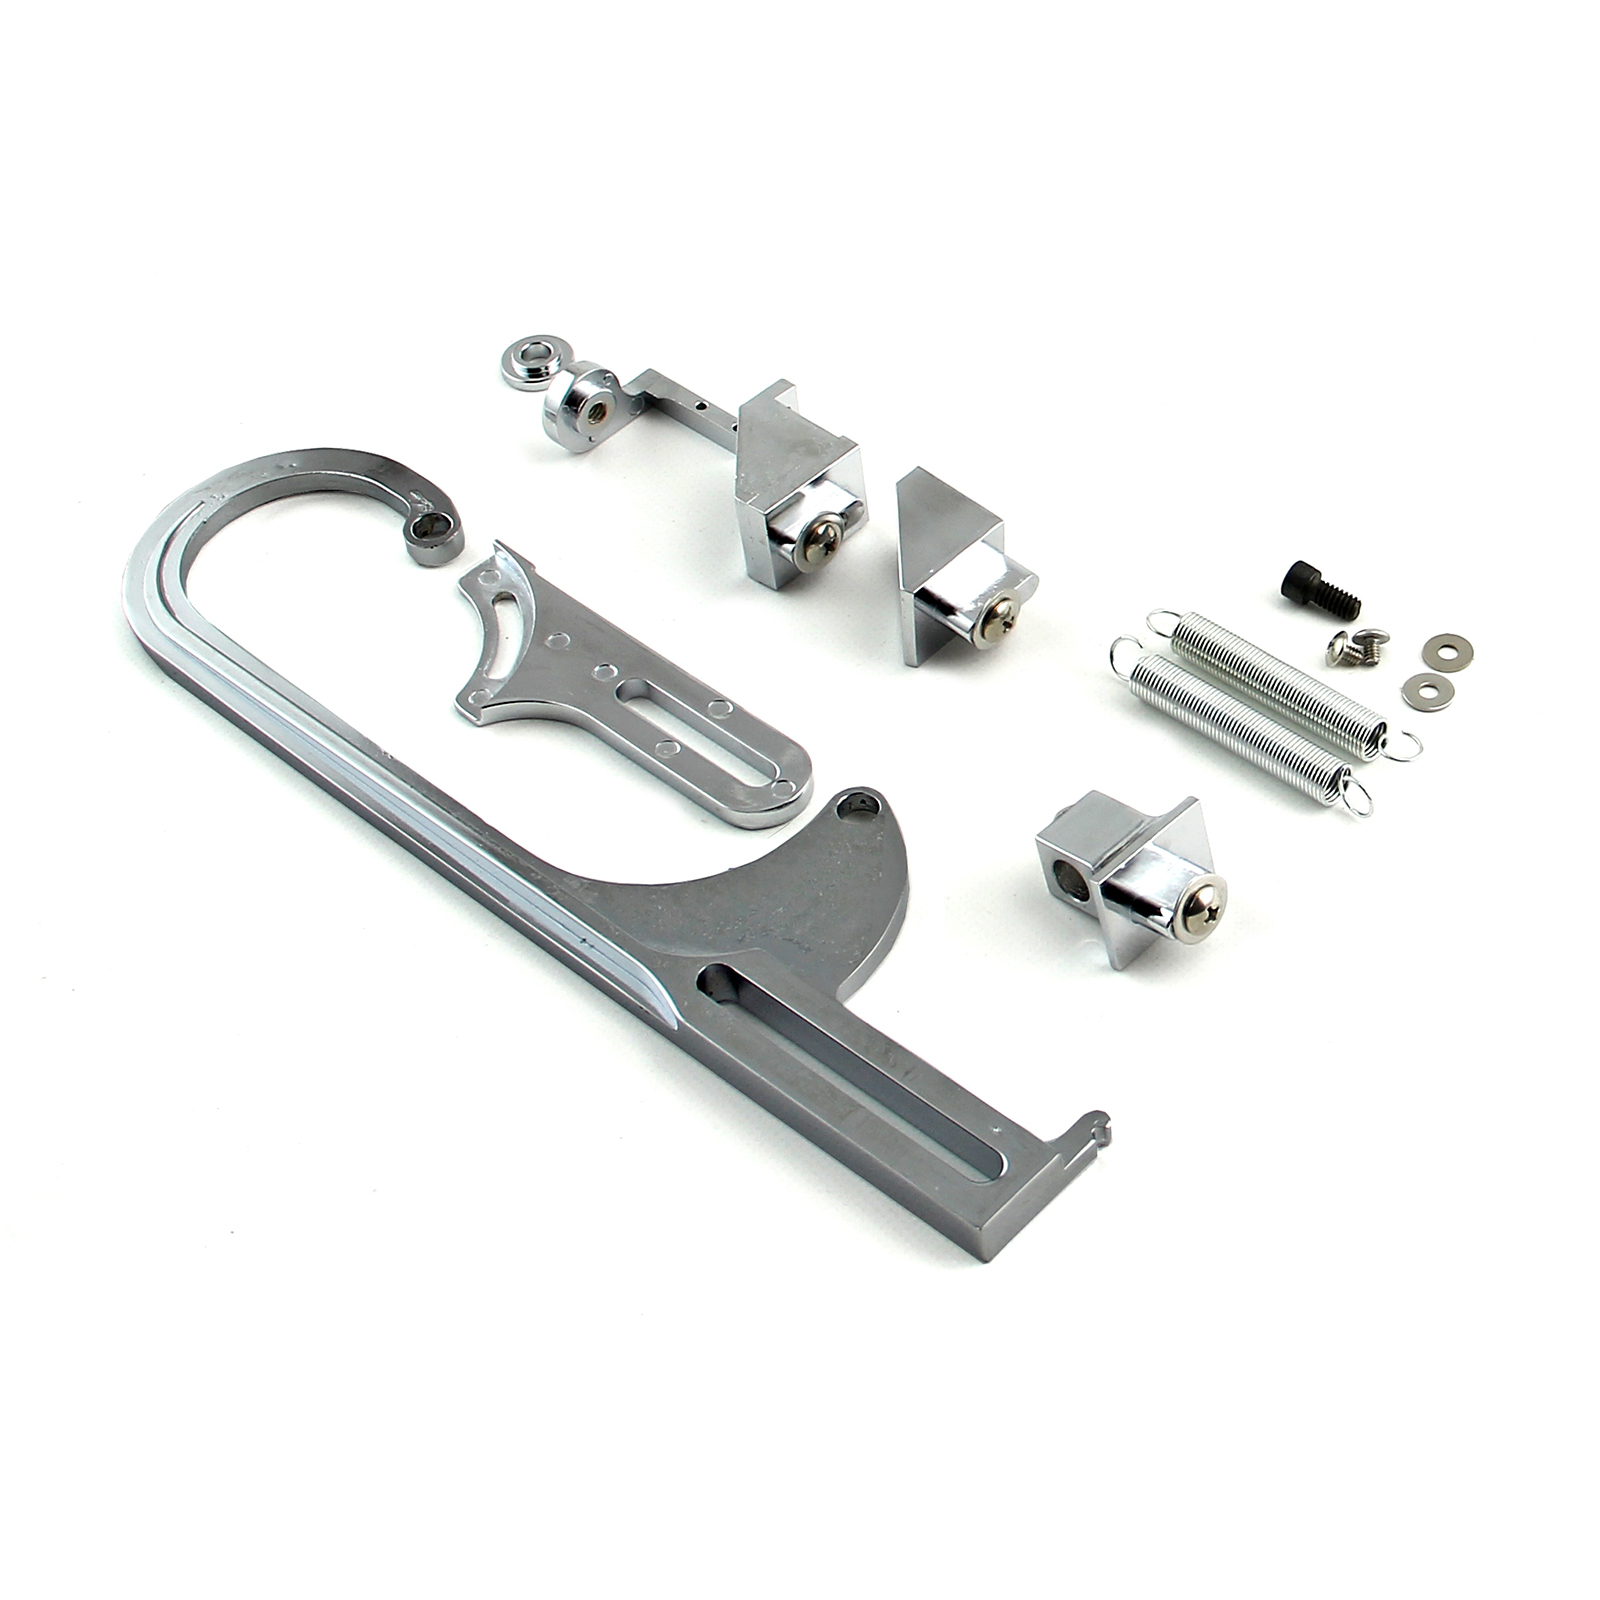 Carburetor Throttle Cable Bracket Kit - Chrome w/ Return Springs and Mount